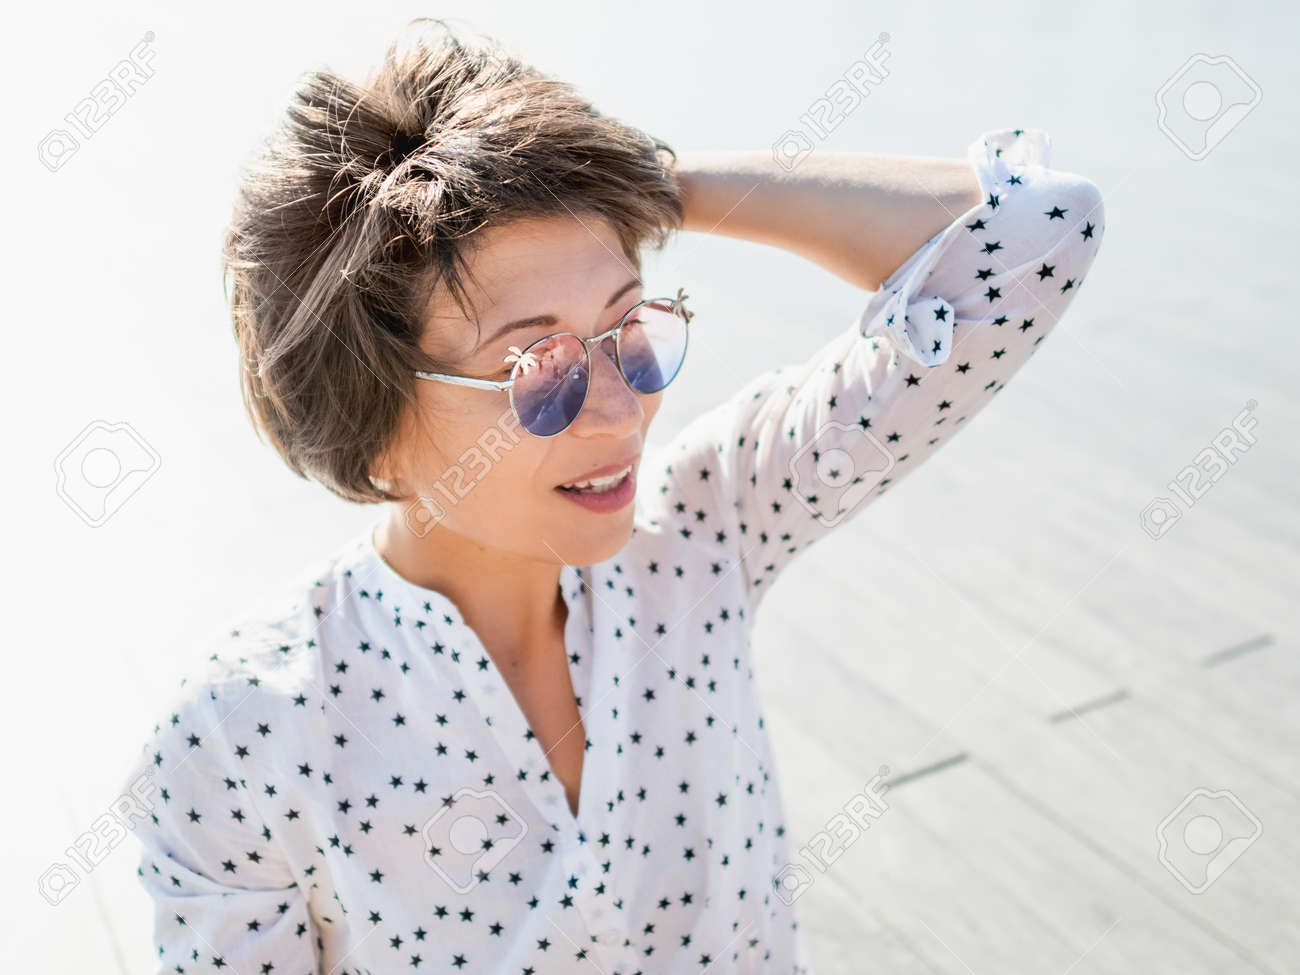 Wind ruffles short hair of freckled woman in colorful sunglasses. Smiling woman at open wooden scene of urban park. Summer vibes. Sincere emotions. - 172806628